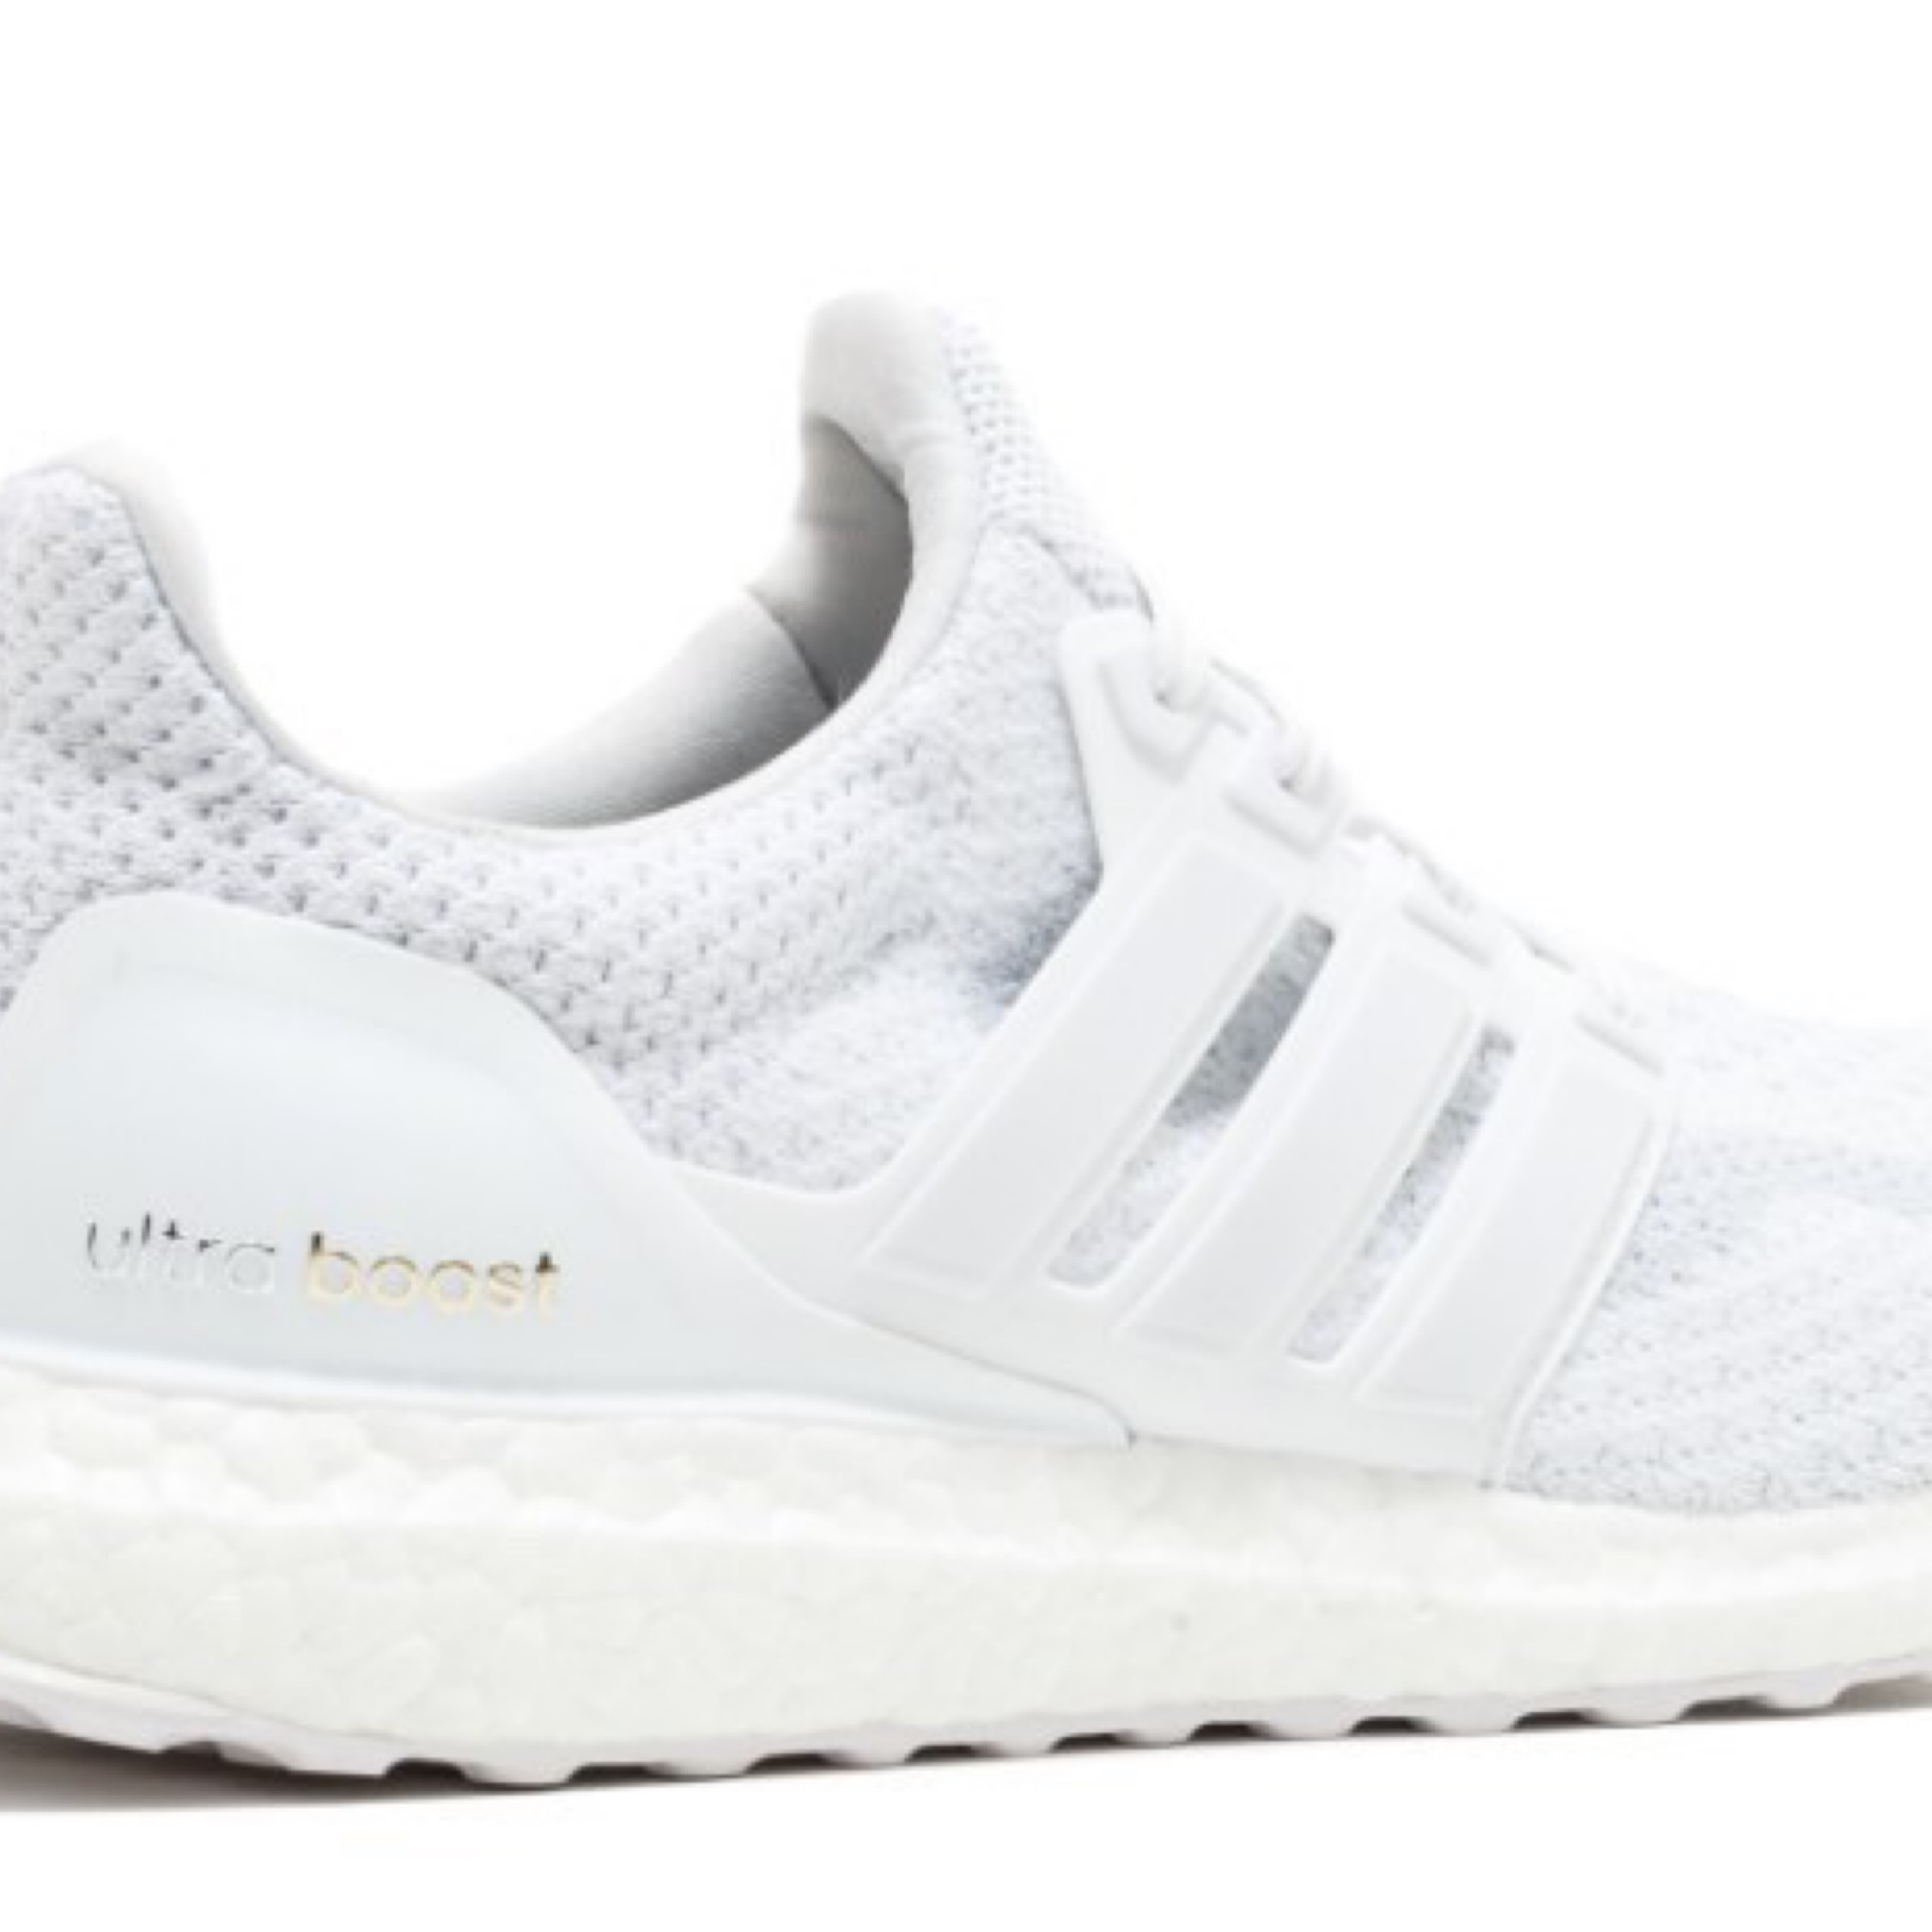 huge discount 81d65 c97f5 Adidas Ultraboost Clima White